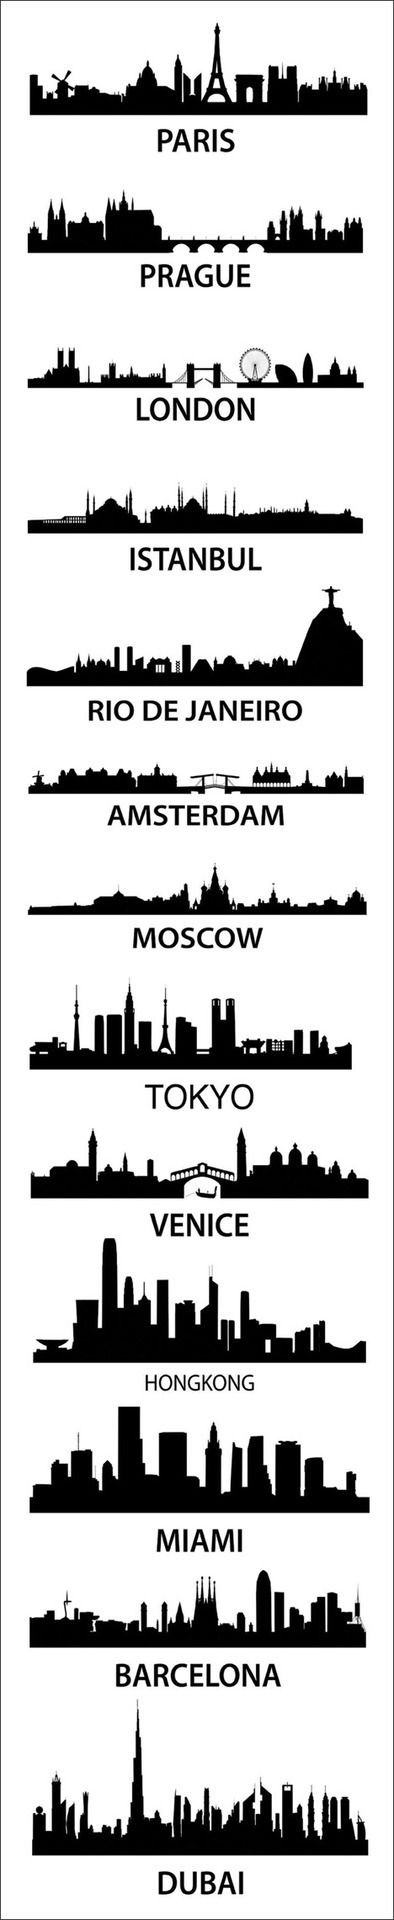 Iconic Skylines | Geography Education | Scoop.it